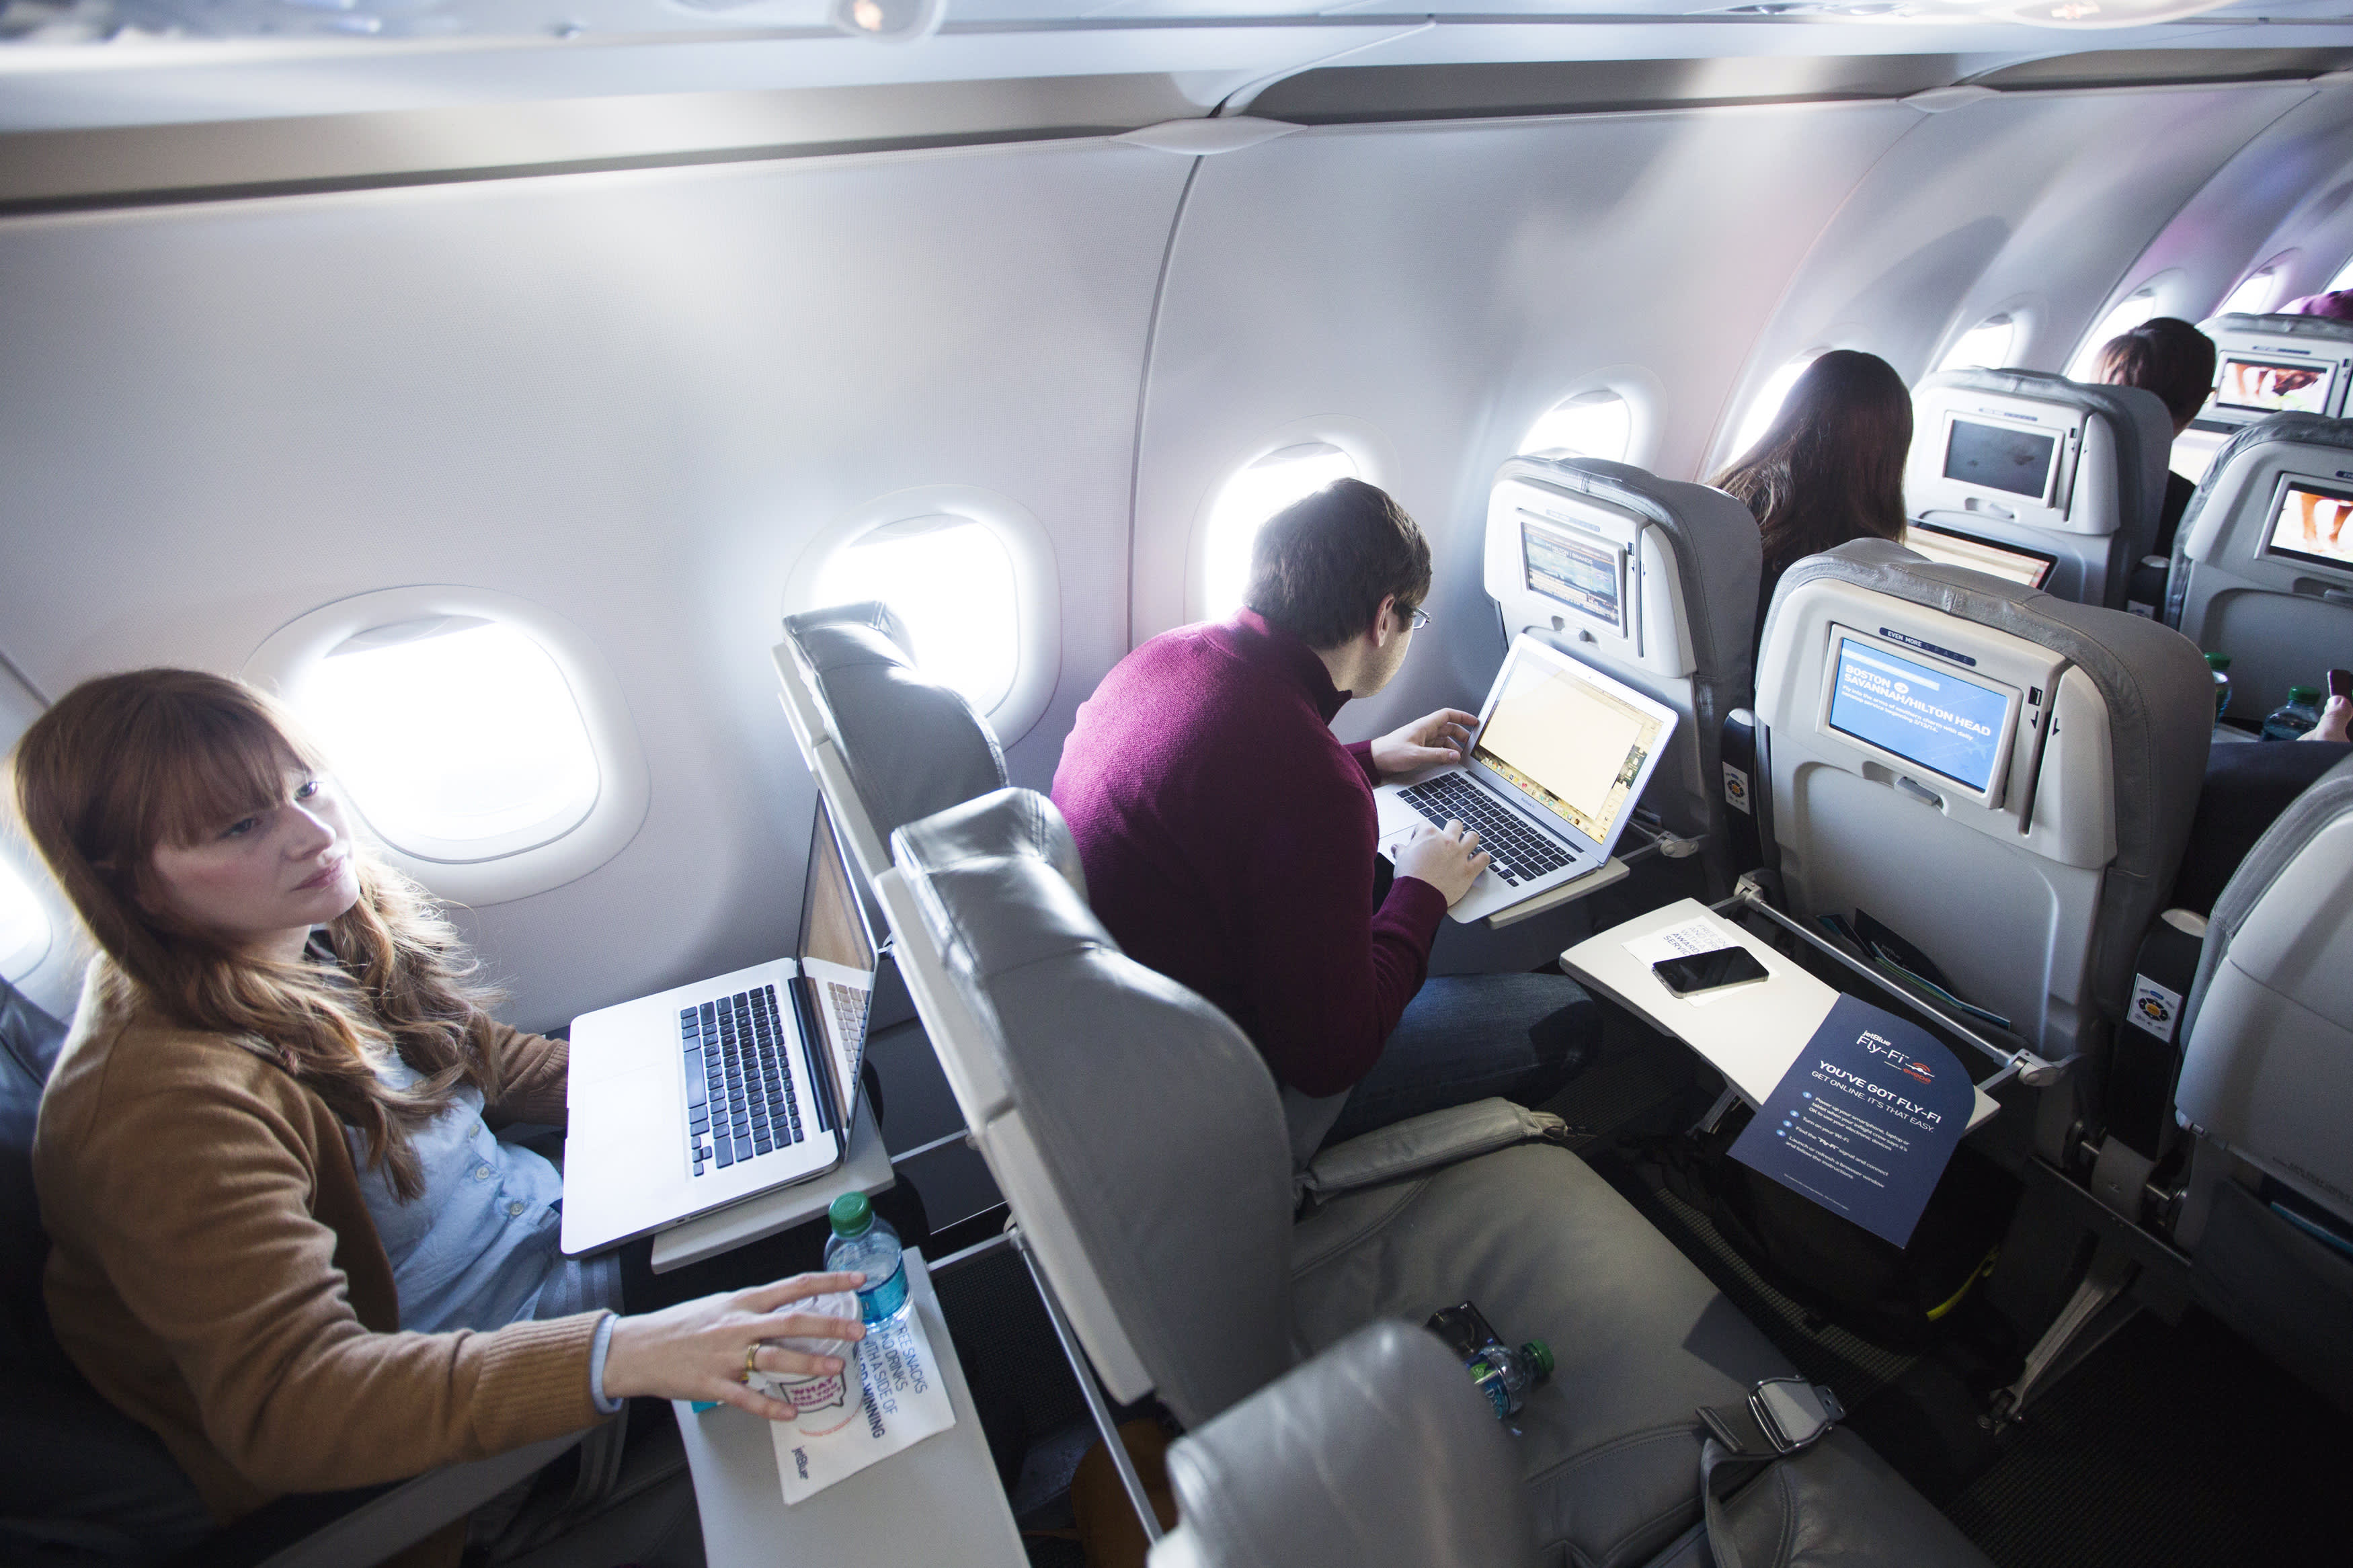 Delta's test of free in-flight Wi-Fi may shame other airlines into offering service